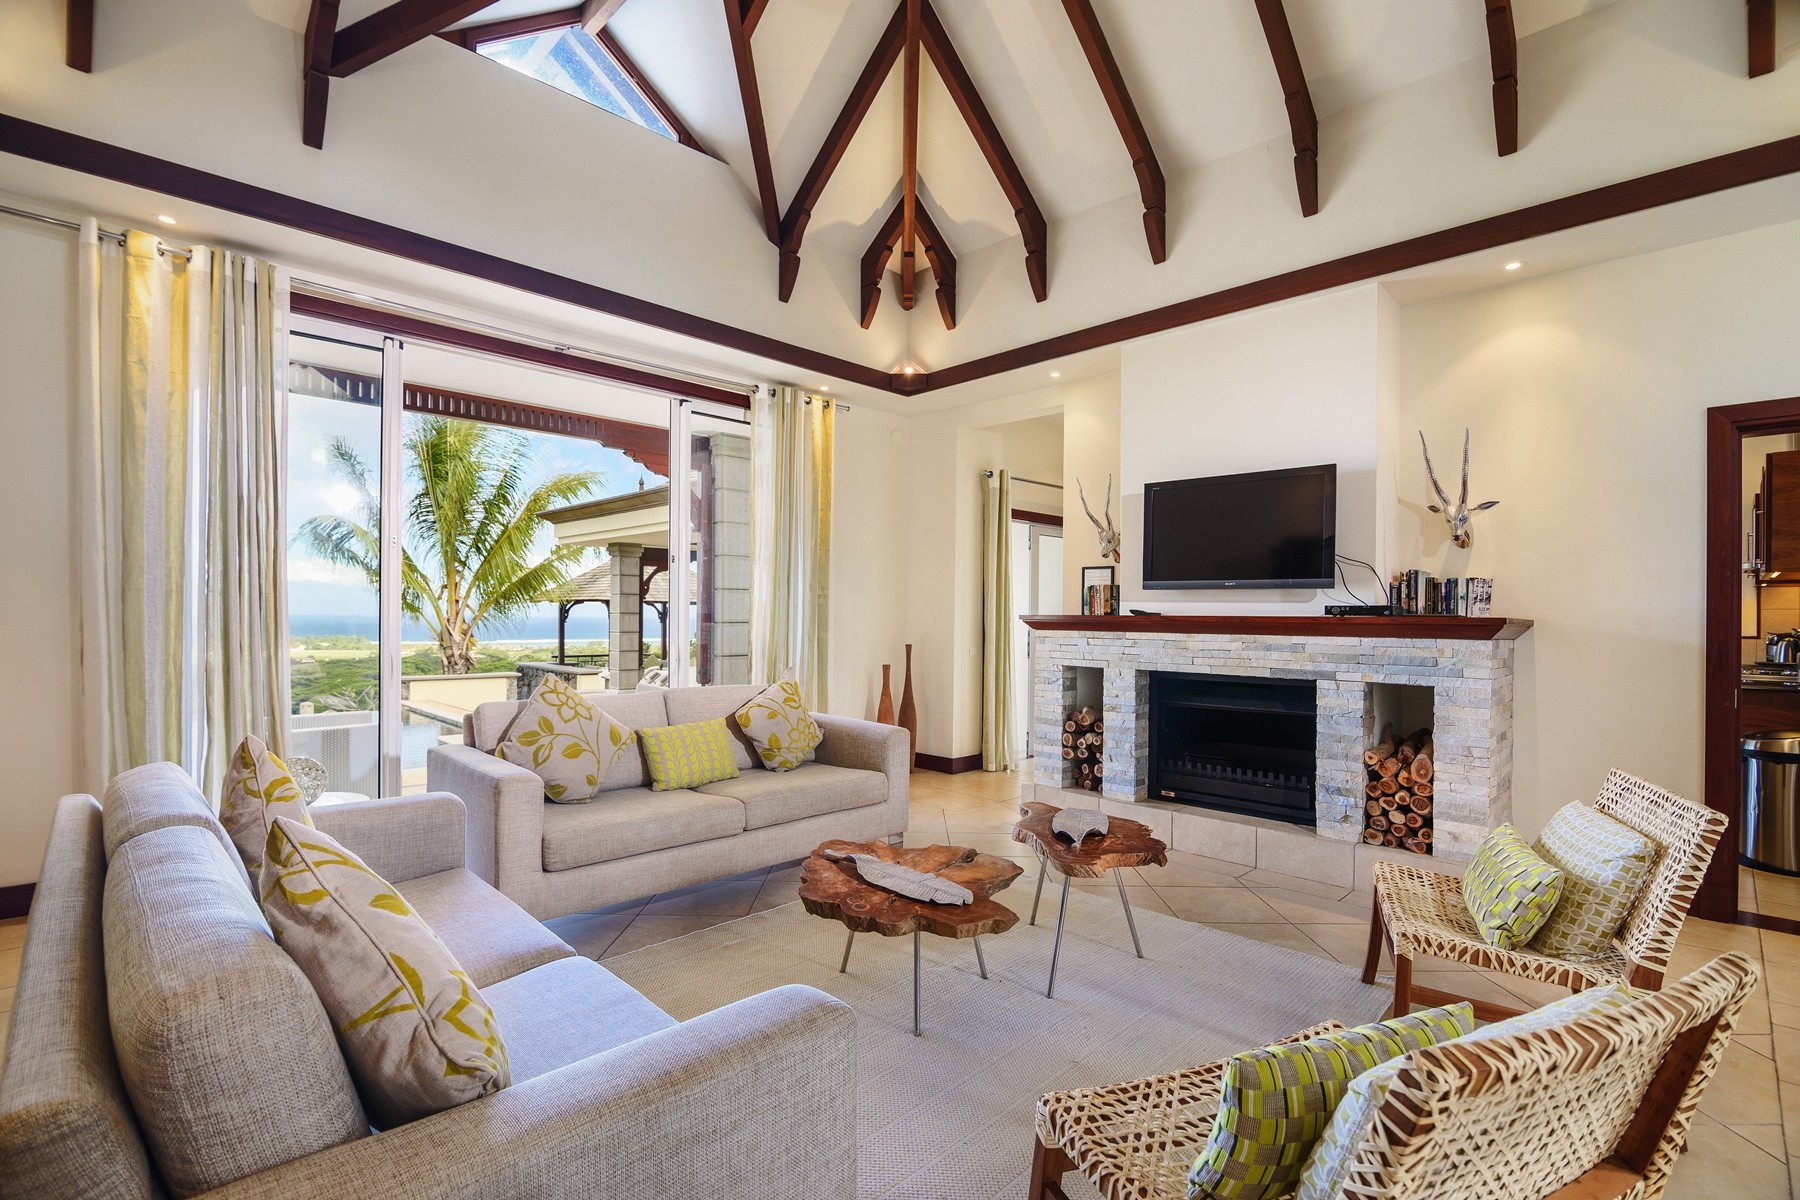 Single Family Home for Sale at 63 Villas Valriche Bel Ombre, Savanne, Mauritius